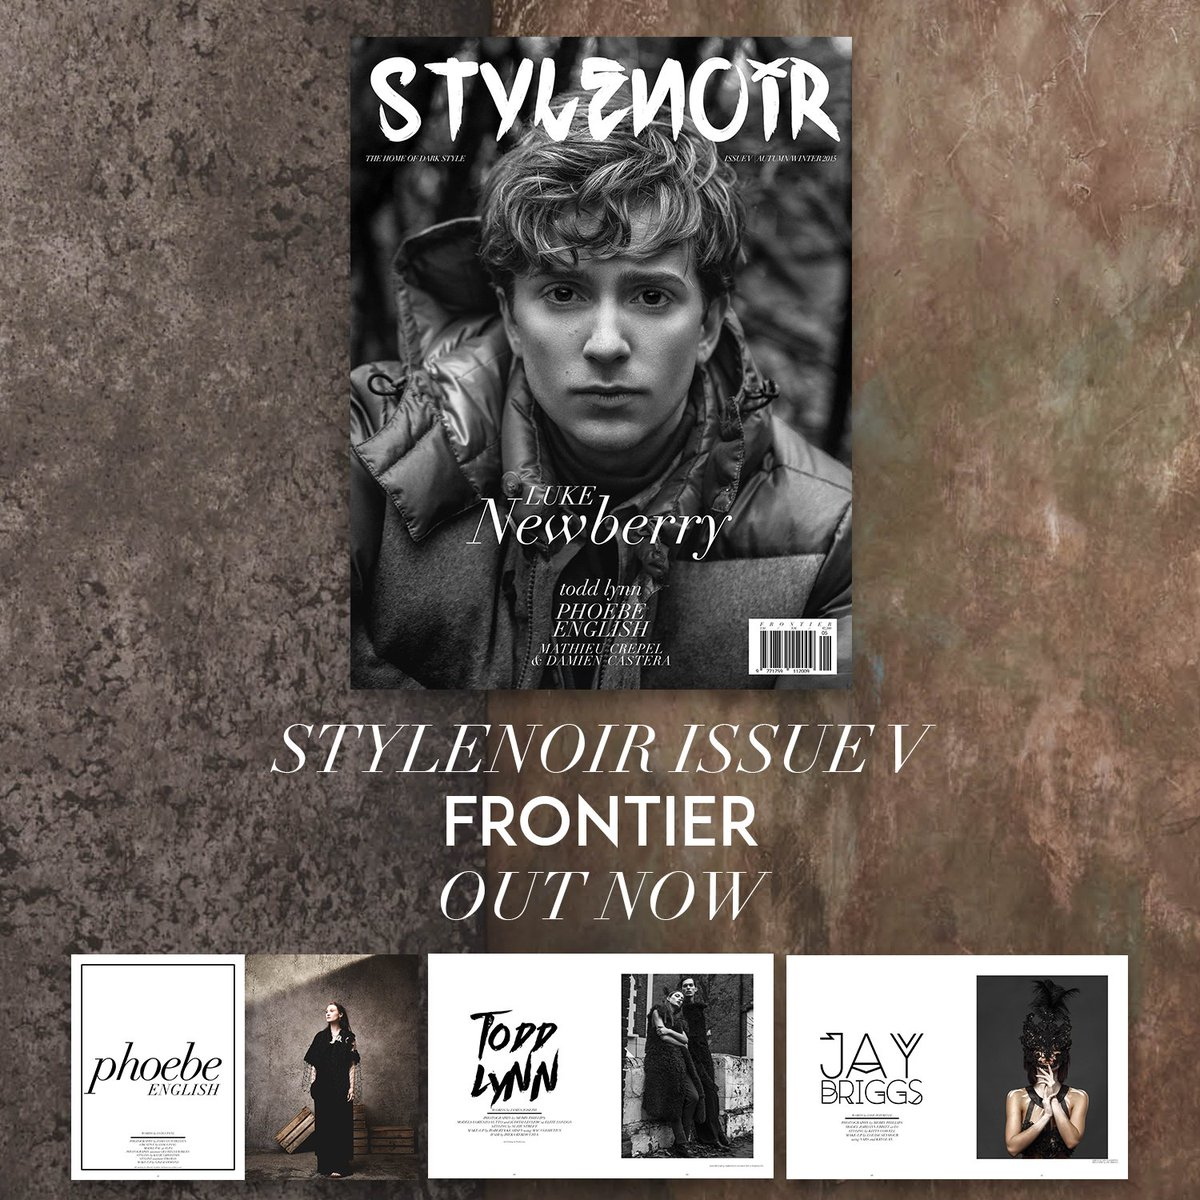 COME ON A JOURNEY WITH US. FRONTIER ISSUE OUT NOW! W/ @lukenewberry on the cover https://t.co/jwfGOKoxRn #stylenoir https://t.co/o9X0haDQTZ